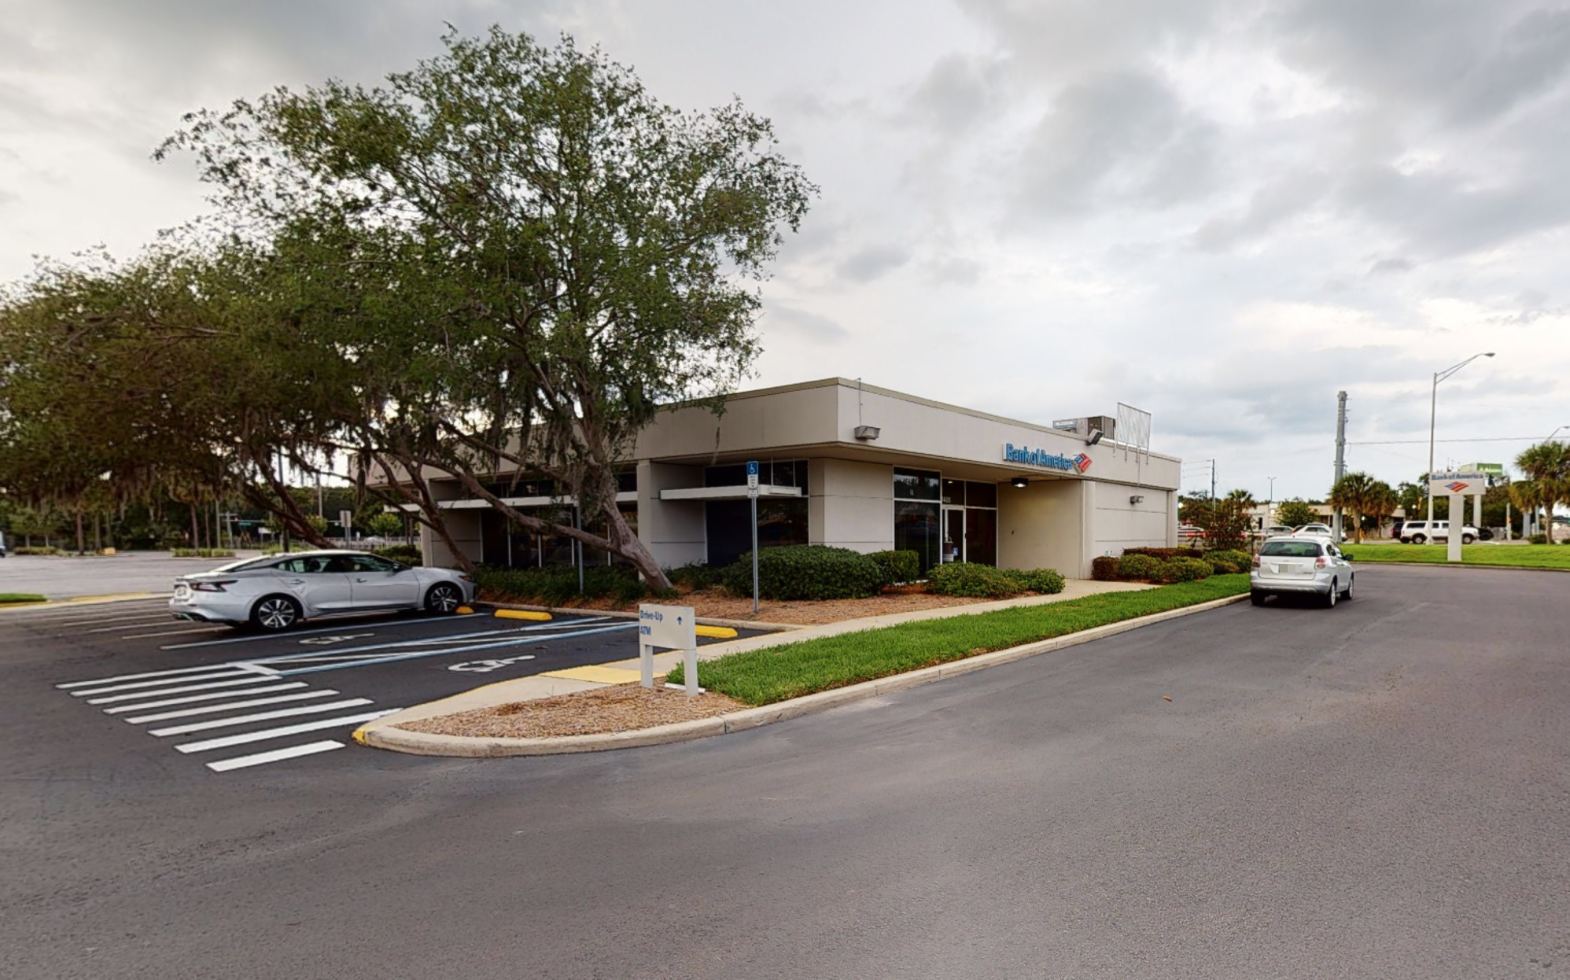 Bank of America financial center with drive-thru ATM | 7485 Broad St, Brooksville, FL 34601